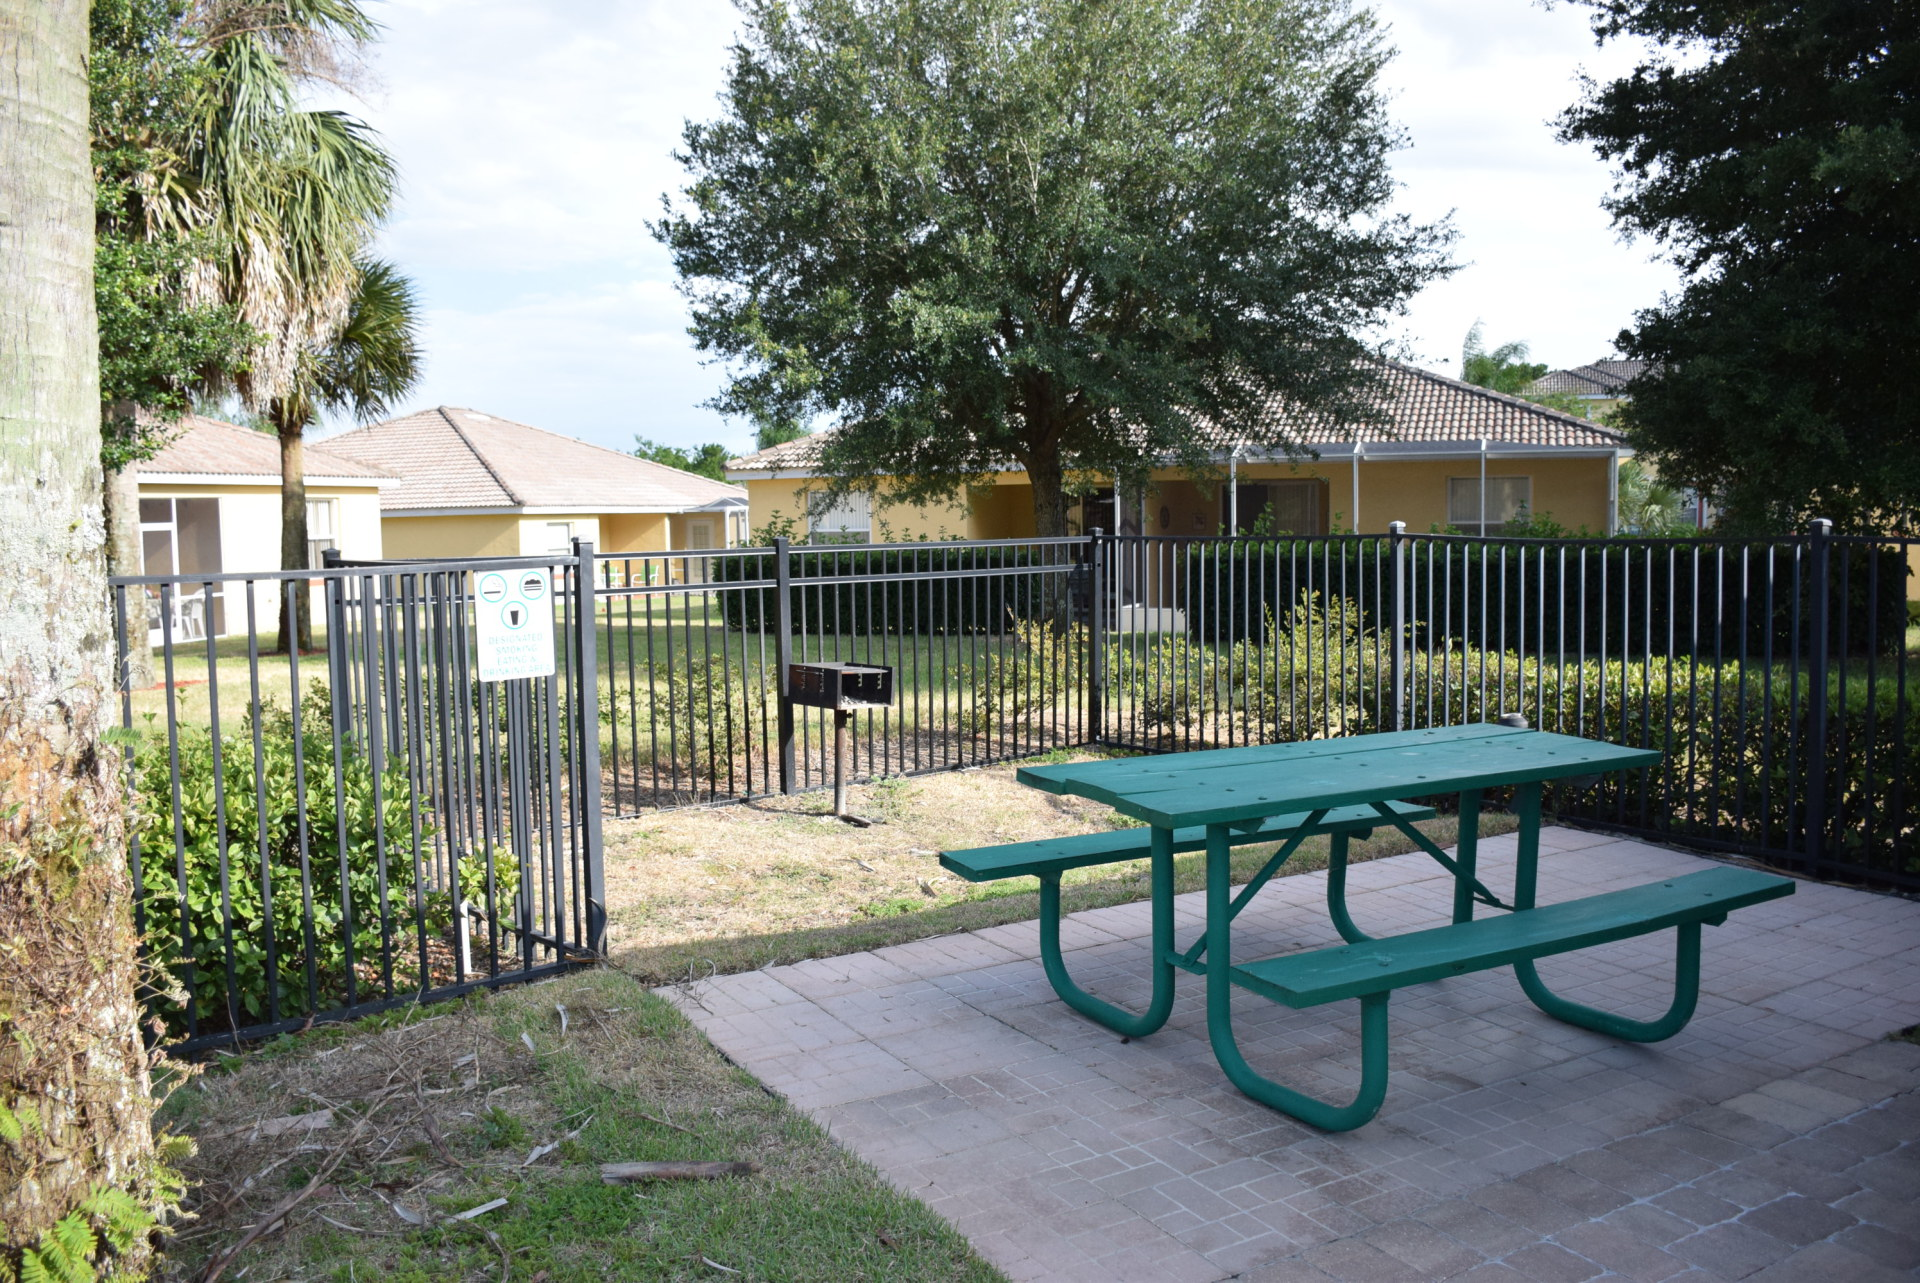 Picnic area at second pool